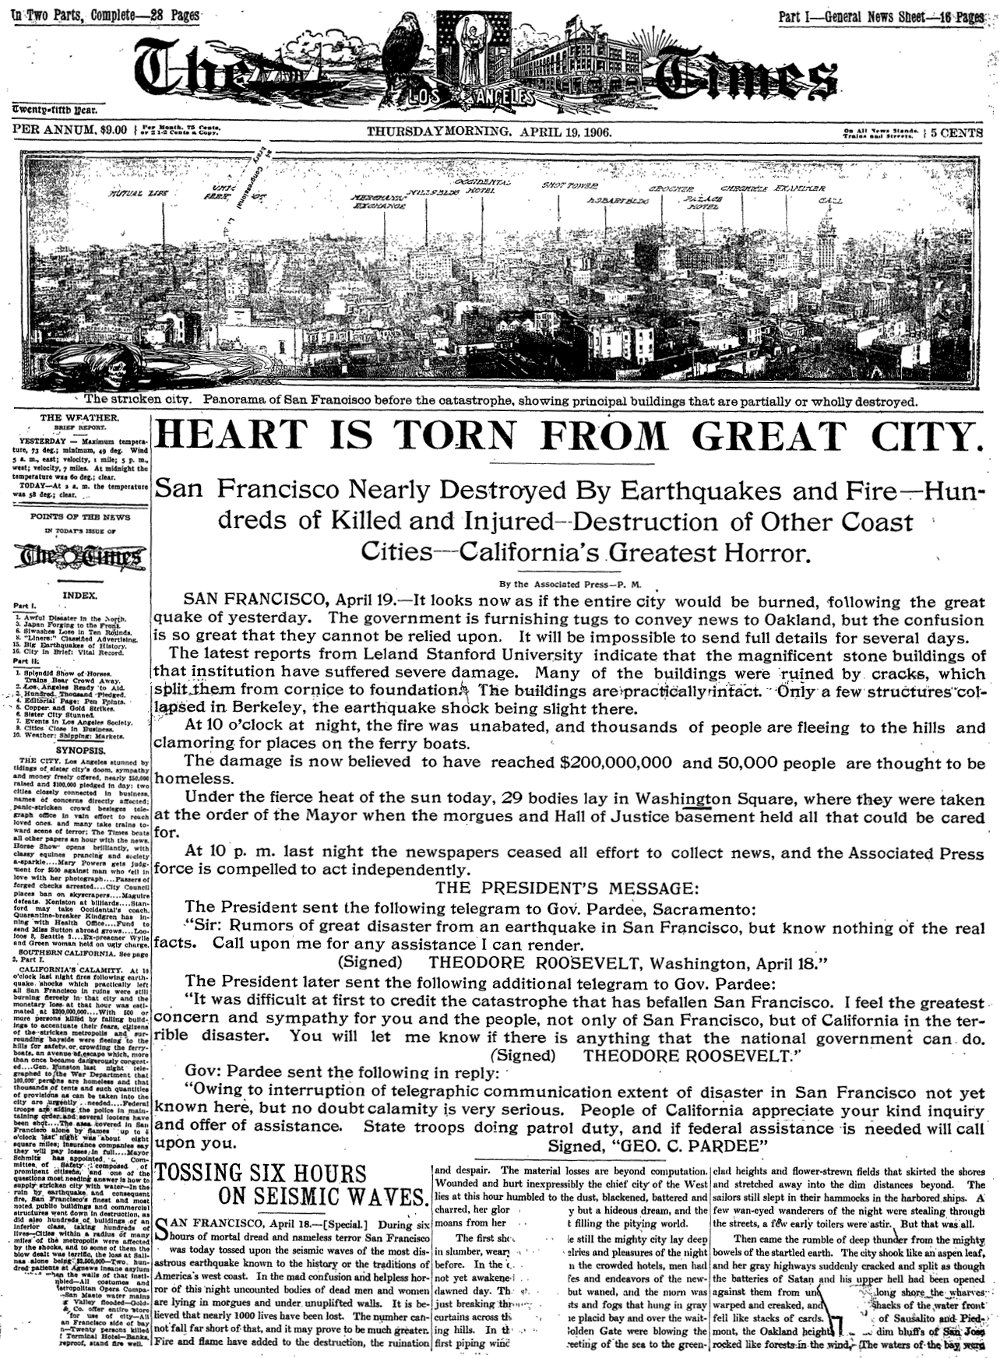 The L.A. Times front page from April 19, 1906 detailing San Francisco's great earthquake and fire